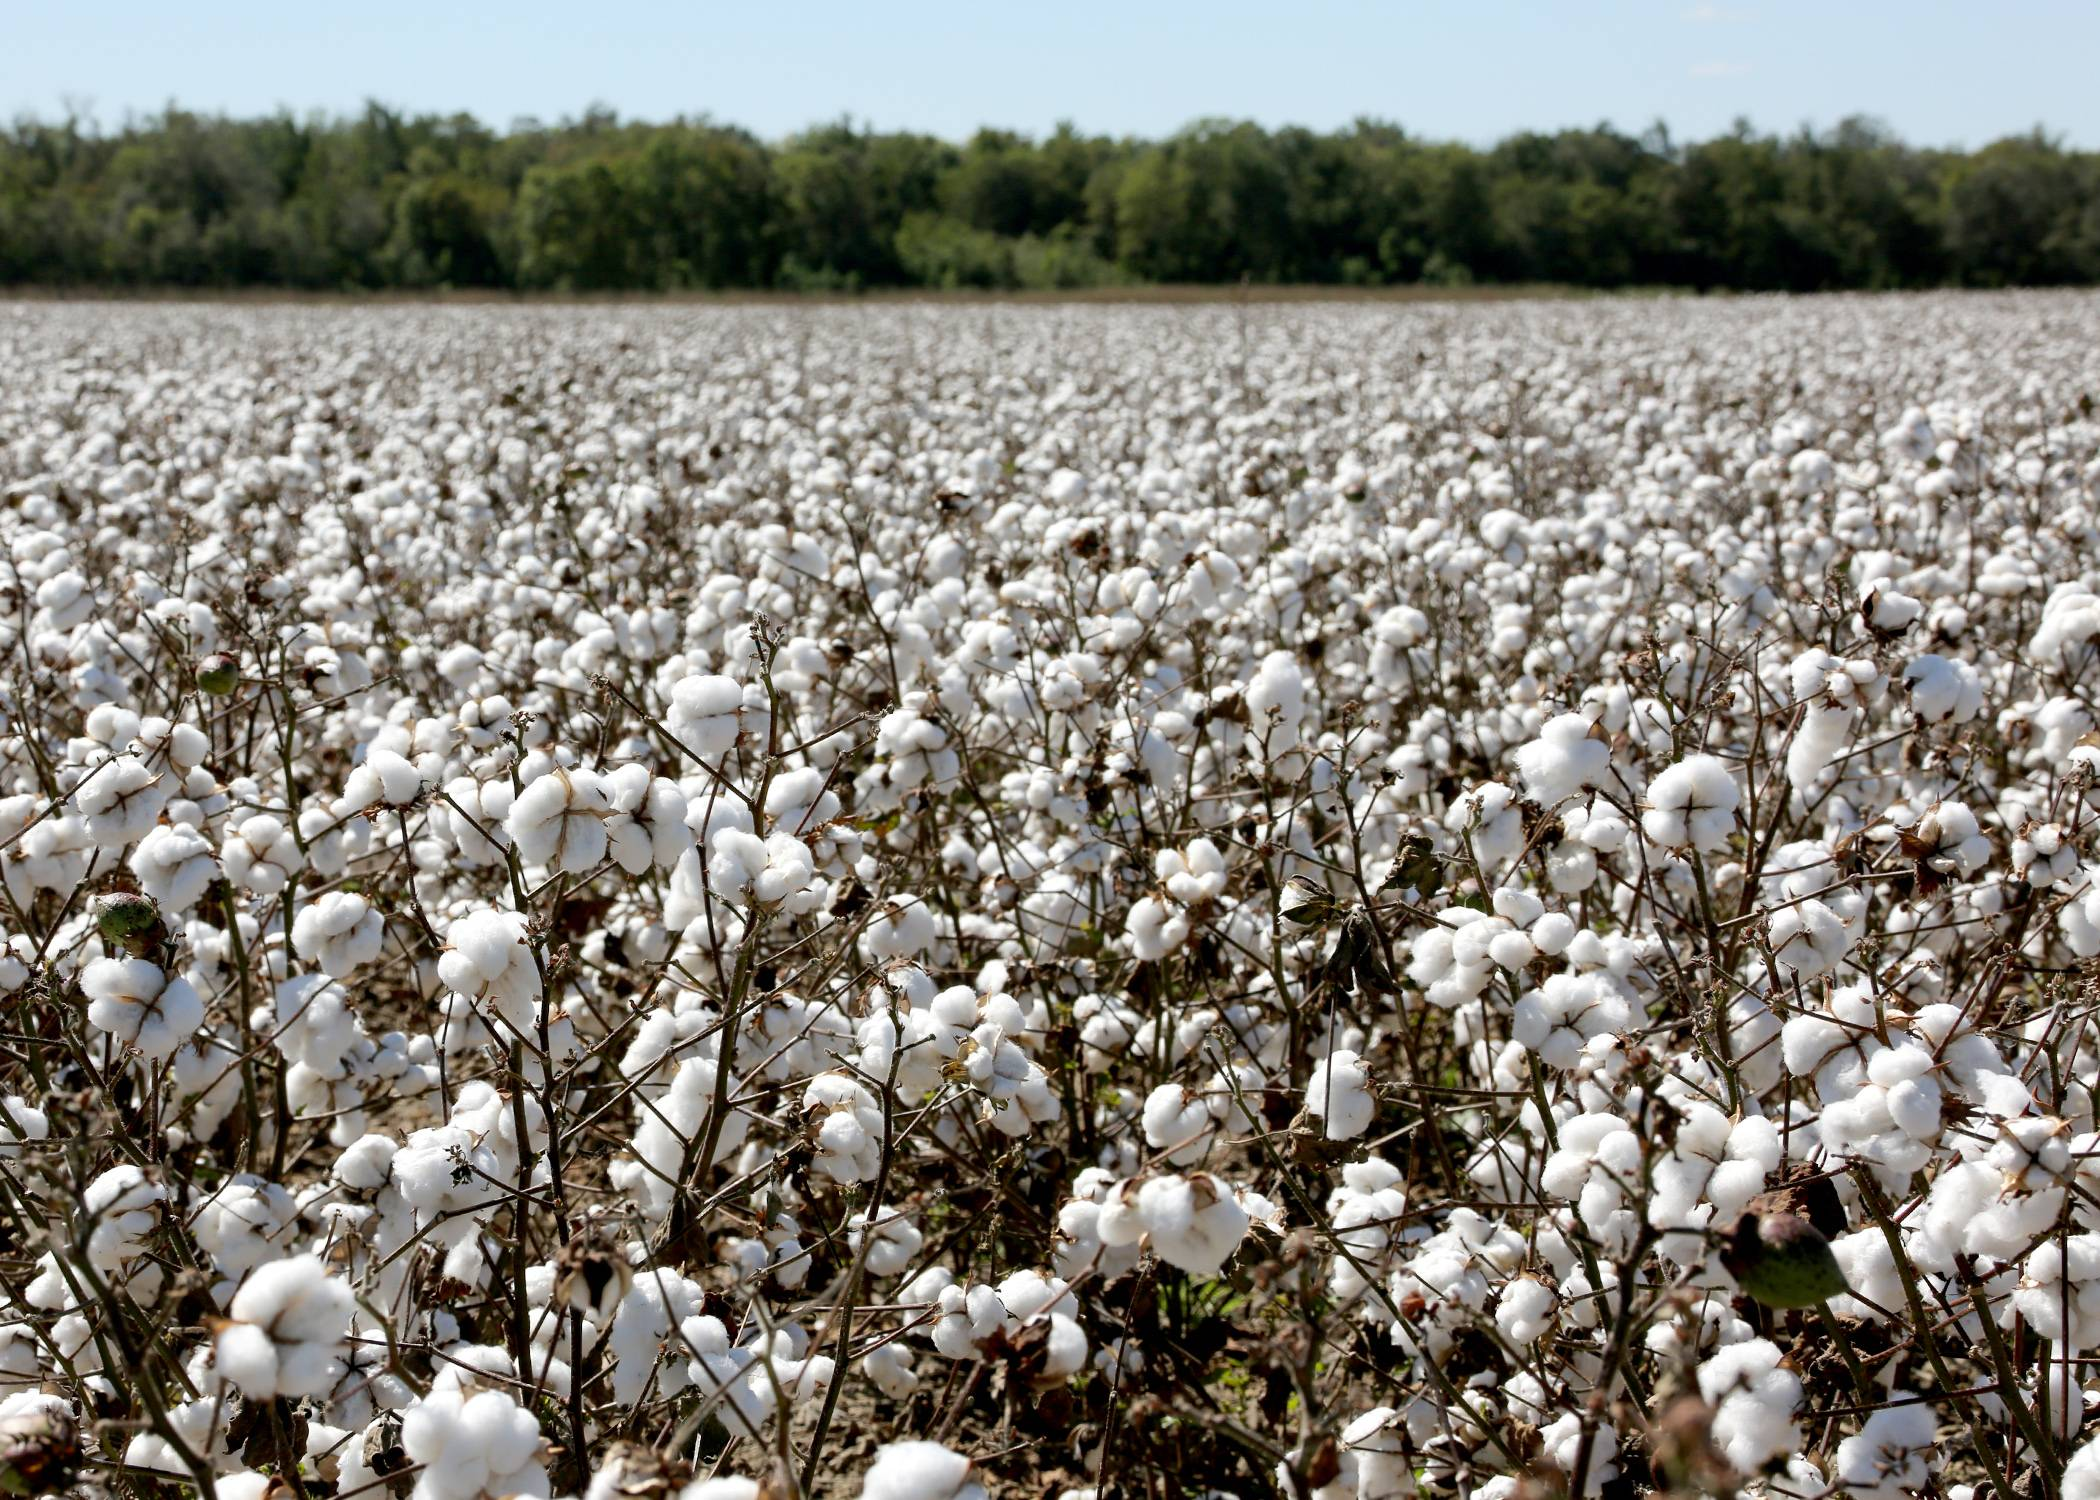 MS Farmers Expected to Plant More Cotton, Soybeans This Year